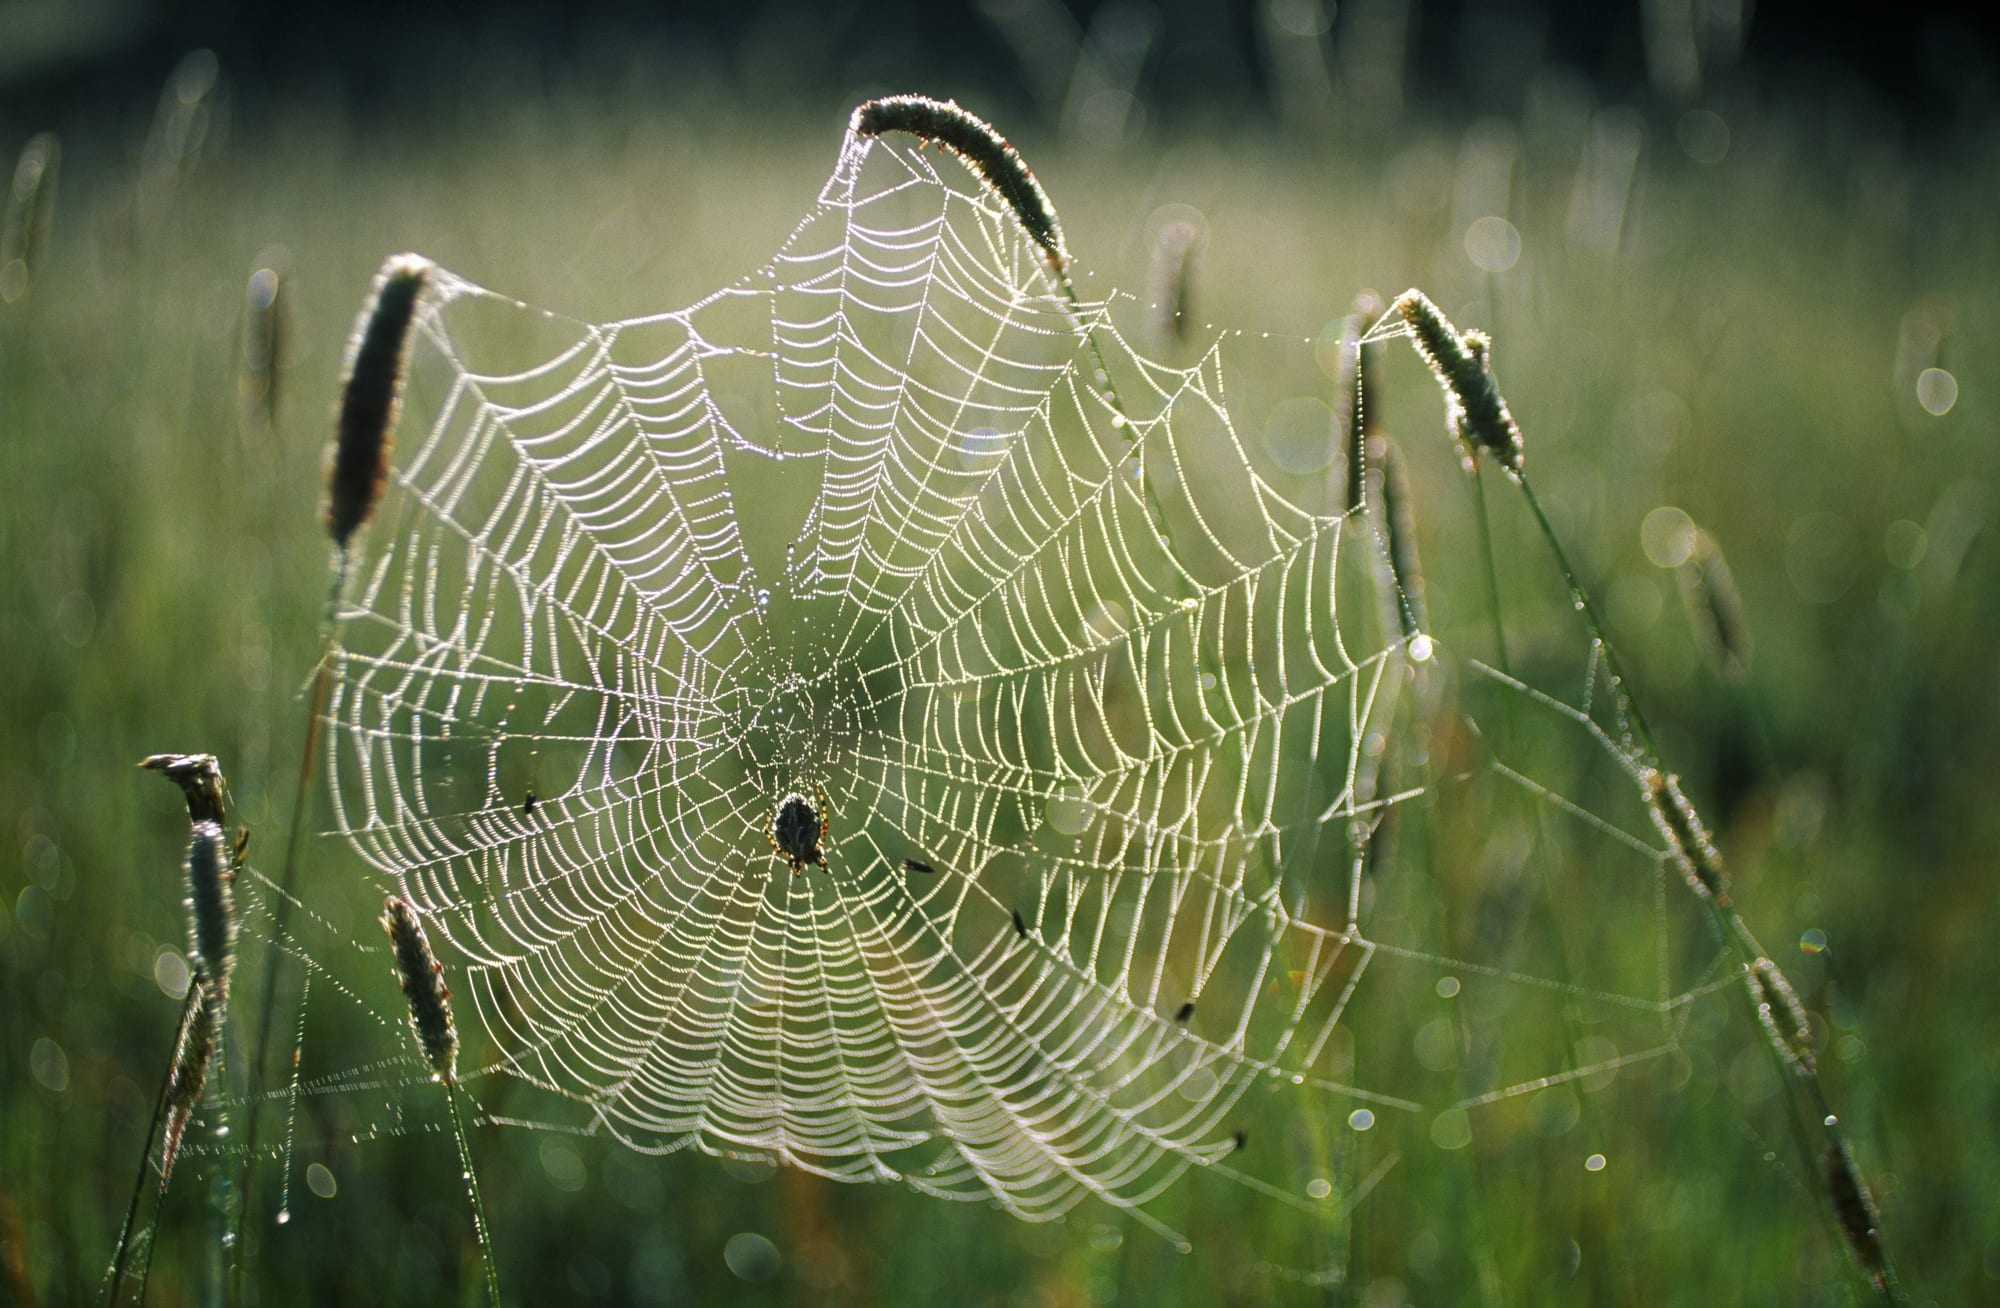 Shareholders Try to Escape Charlotte's Web After Q3 Earnings Report